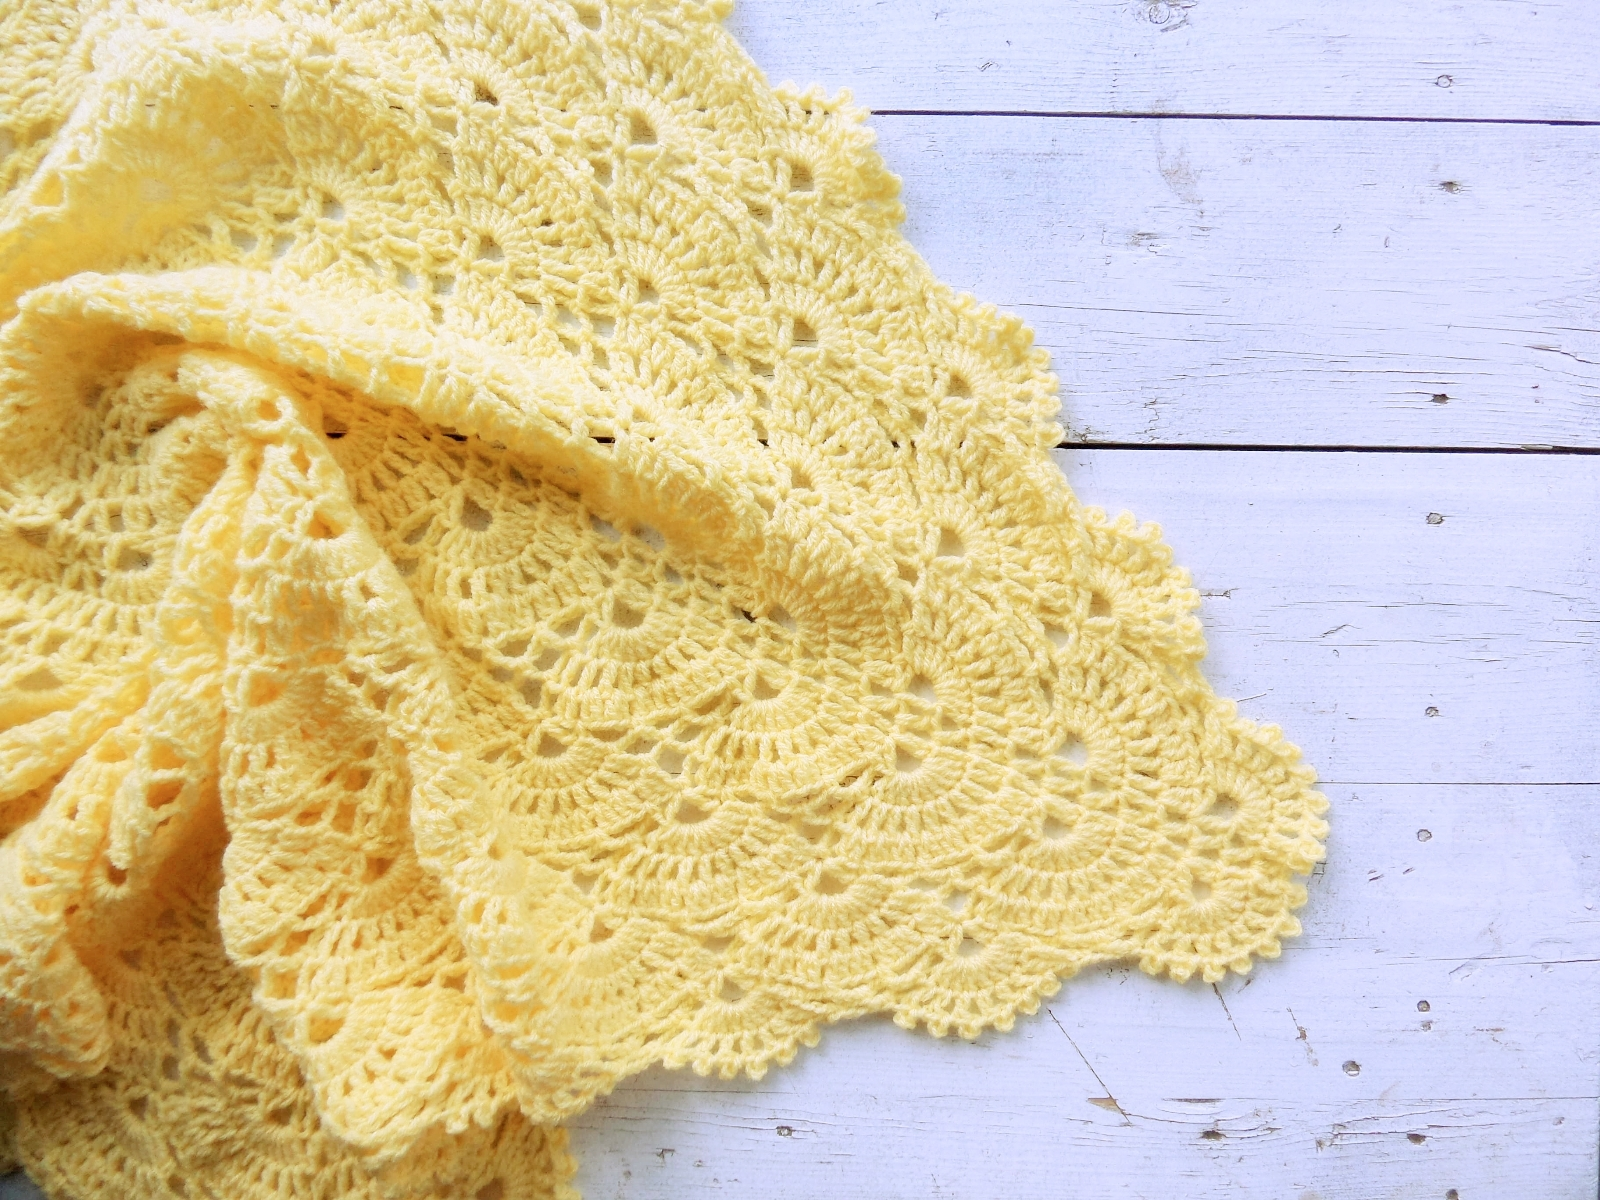 Knitted baby blanket yellow - PLED 197 1